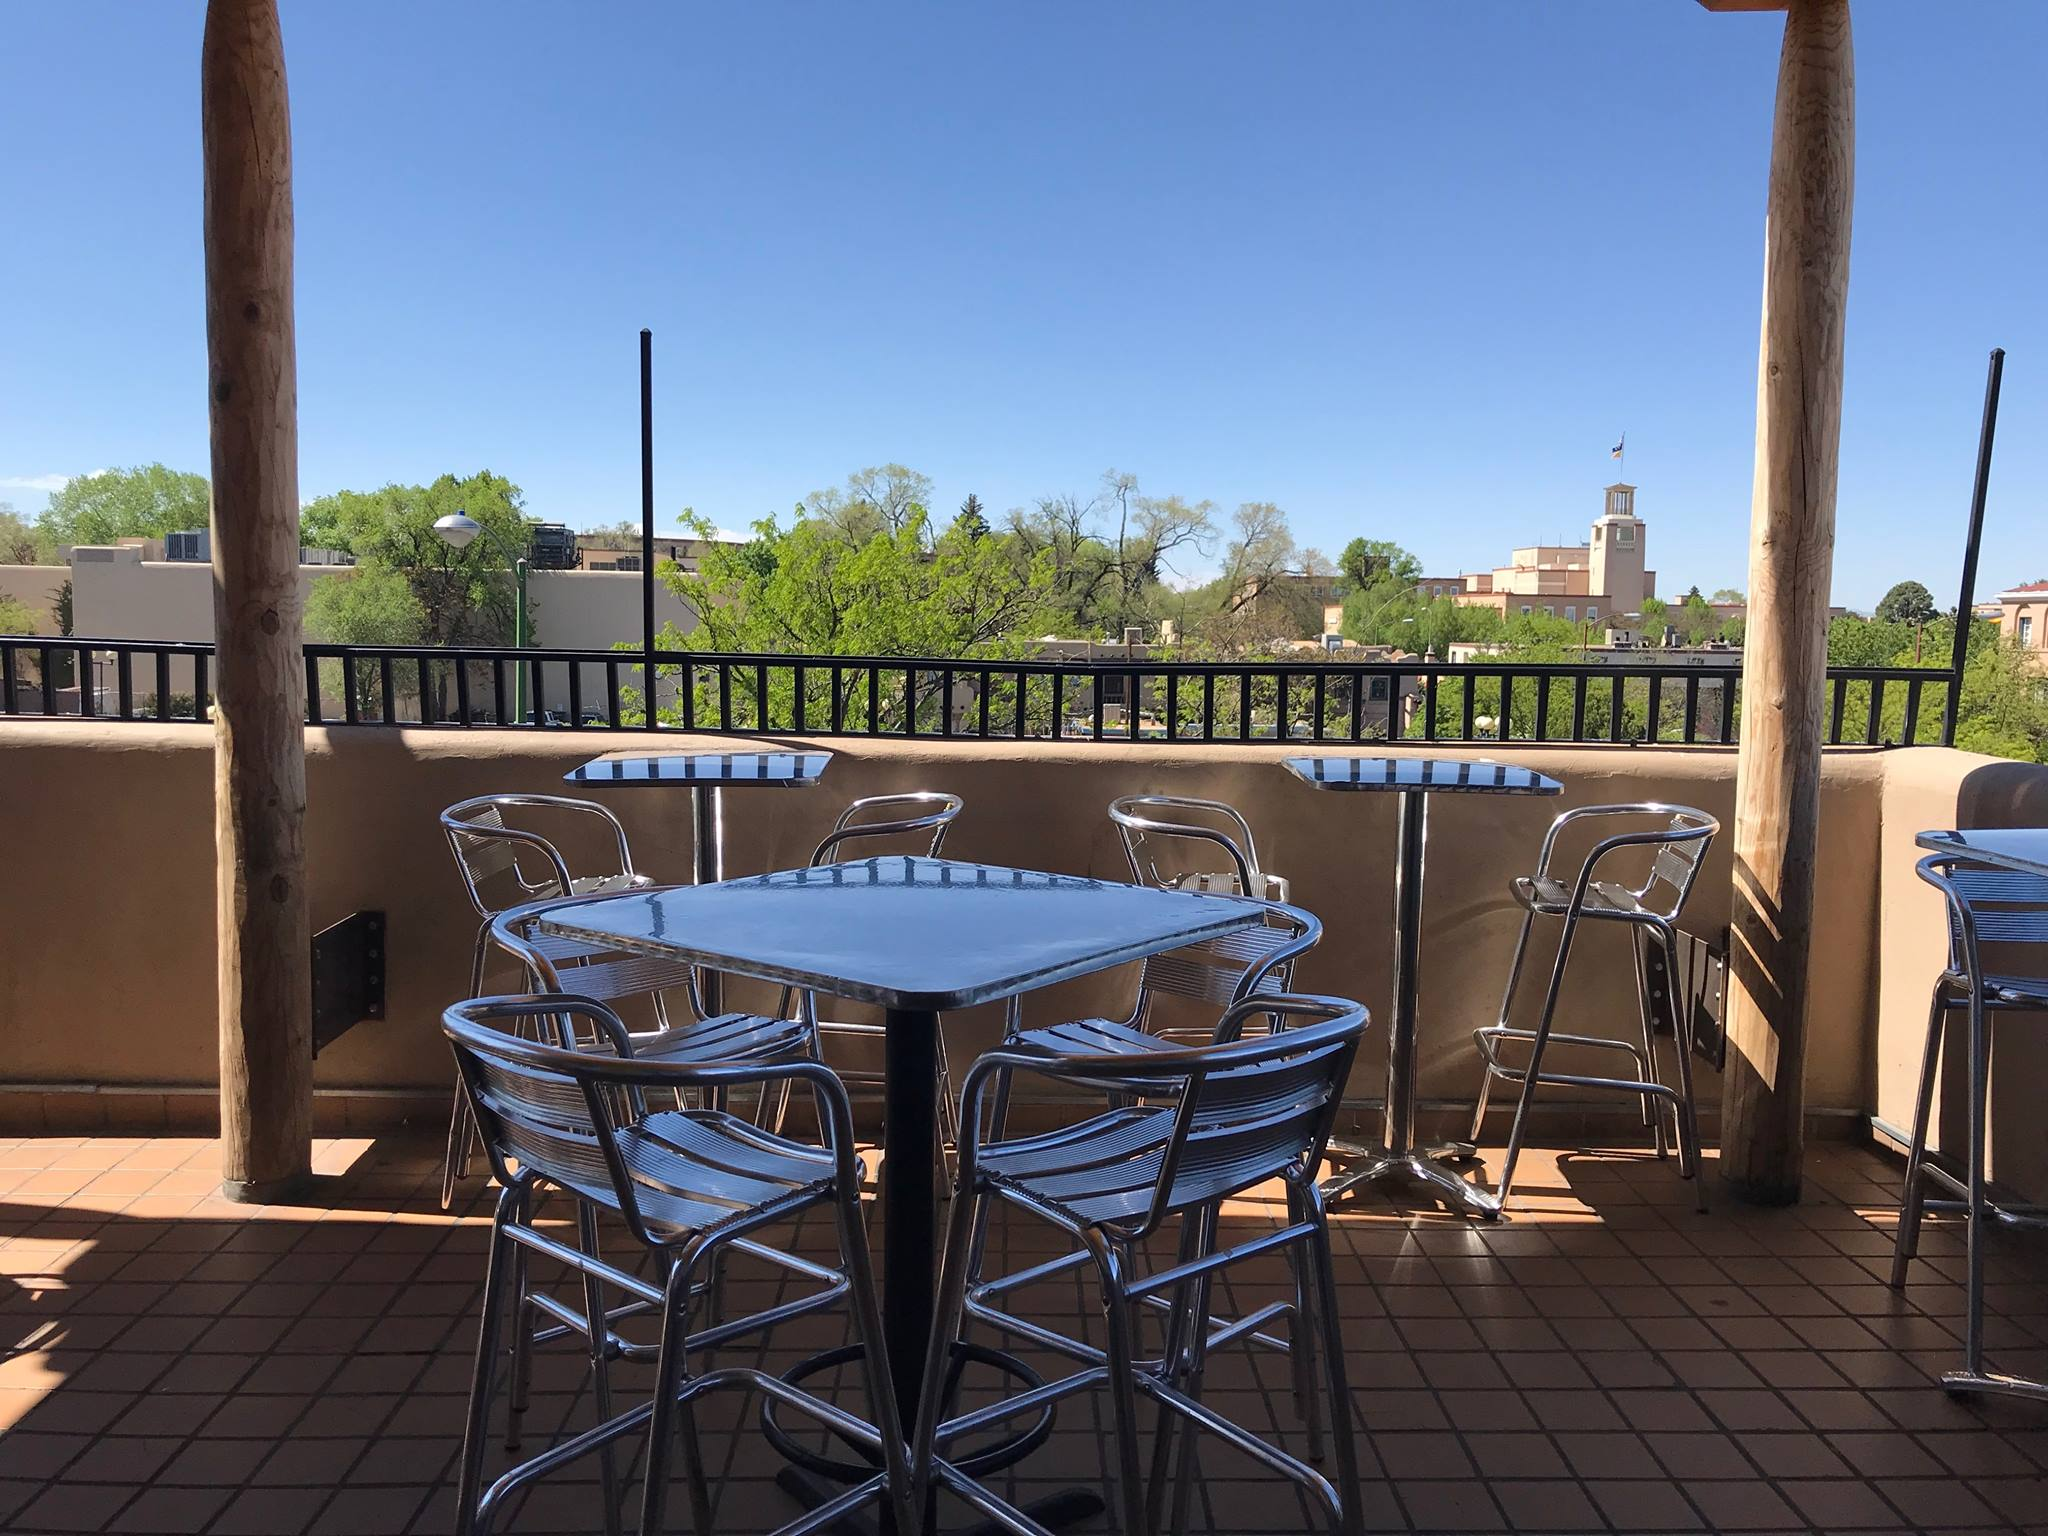 Sightseeing Place to Visit In Santa Fe, New Mexico-Rooftop Pizzeria